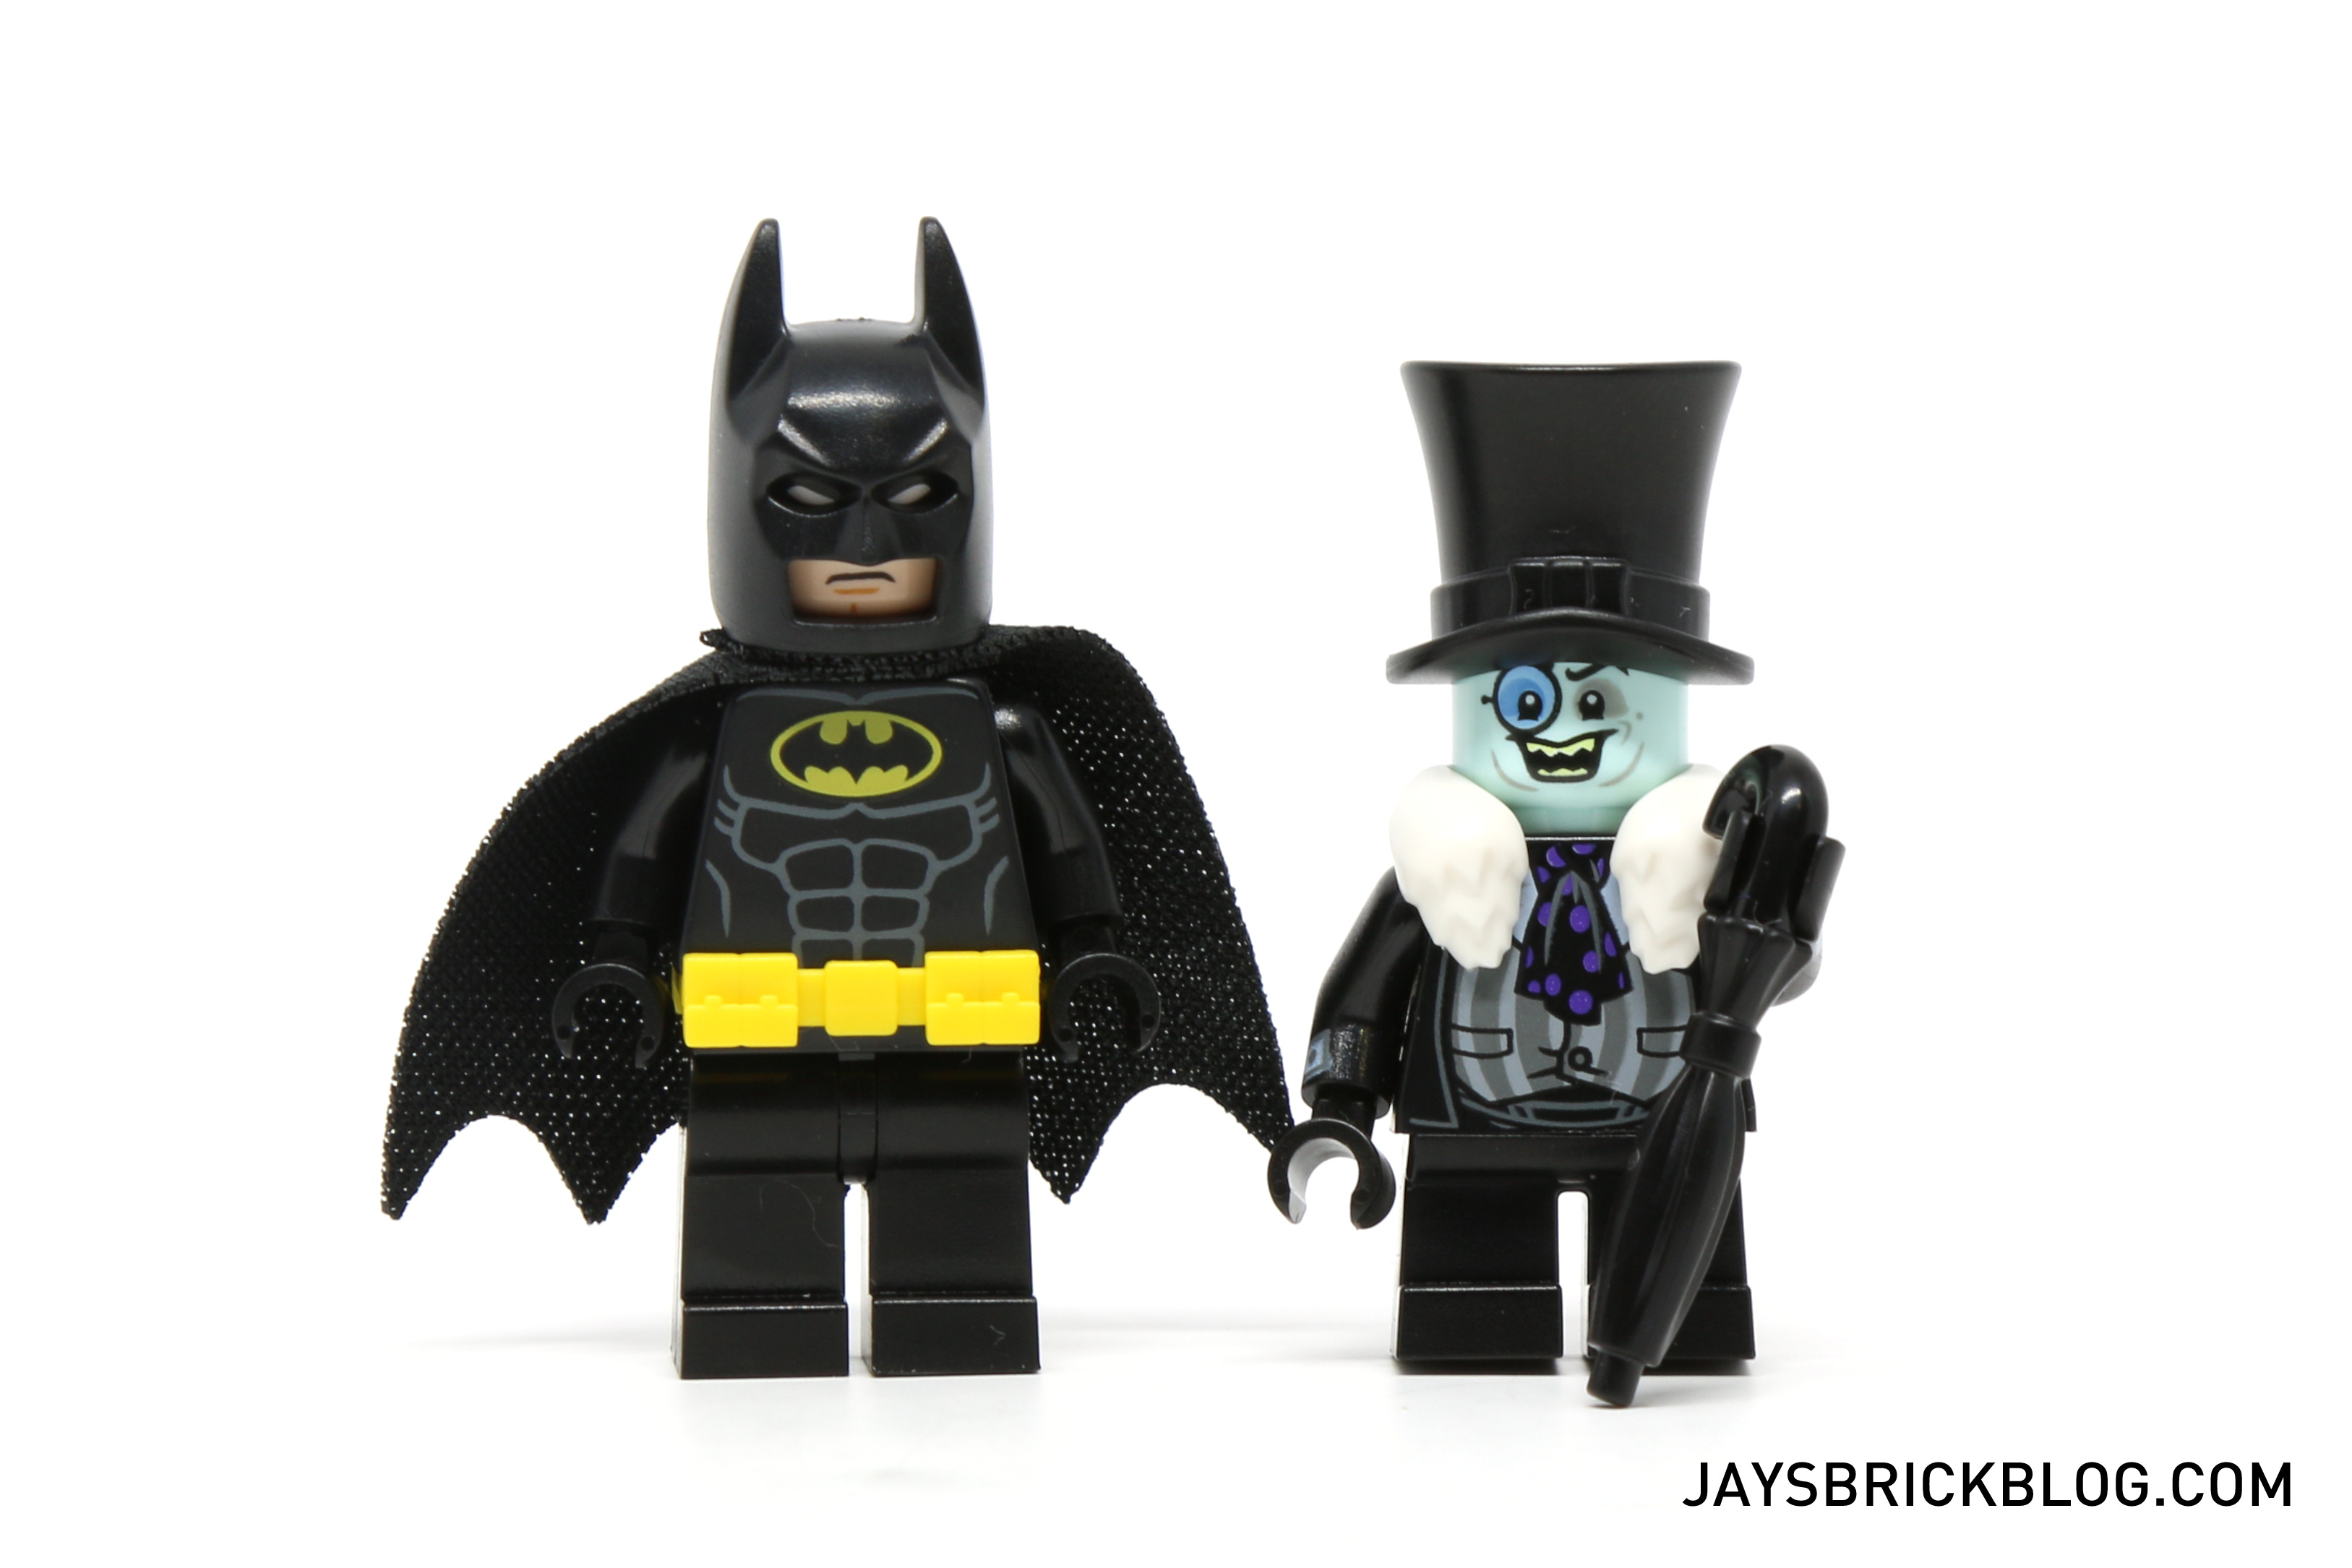 Moving On, We Have The Stock Standard Batman Minifigure From The Lego  Batman Movie, Which If You're Like Me And Plan On Collecting The Entire  Theme Will Be